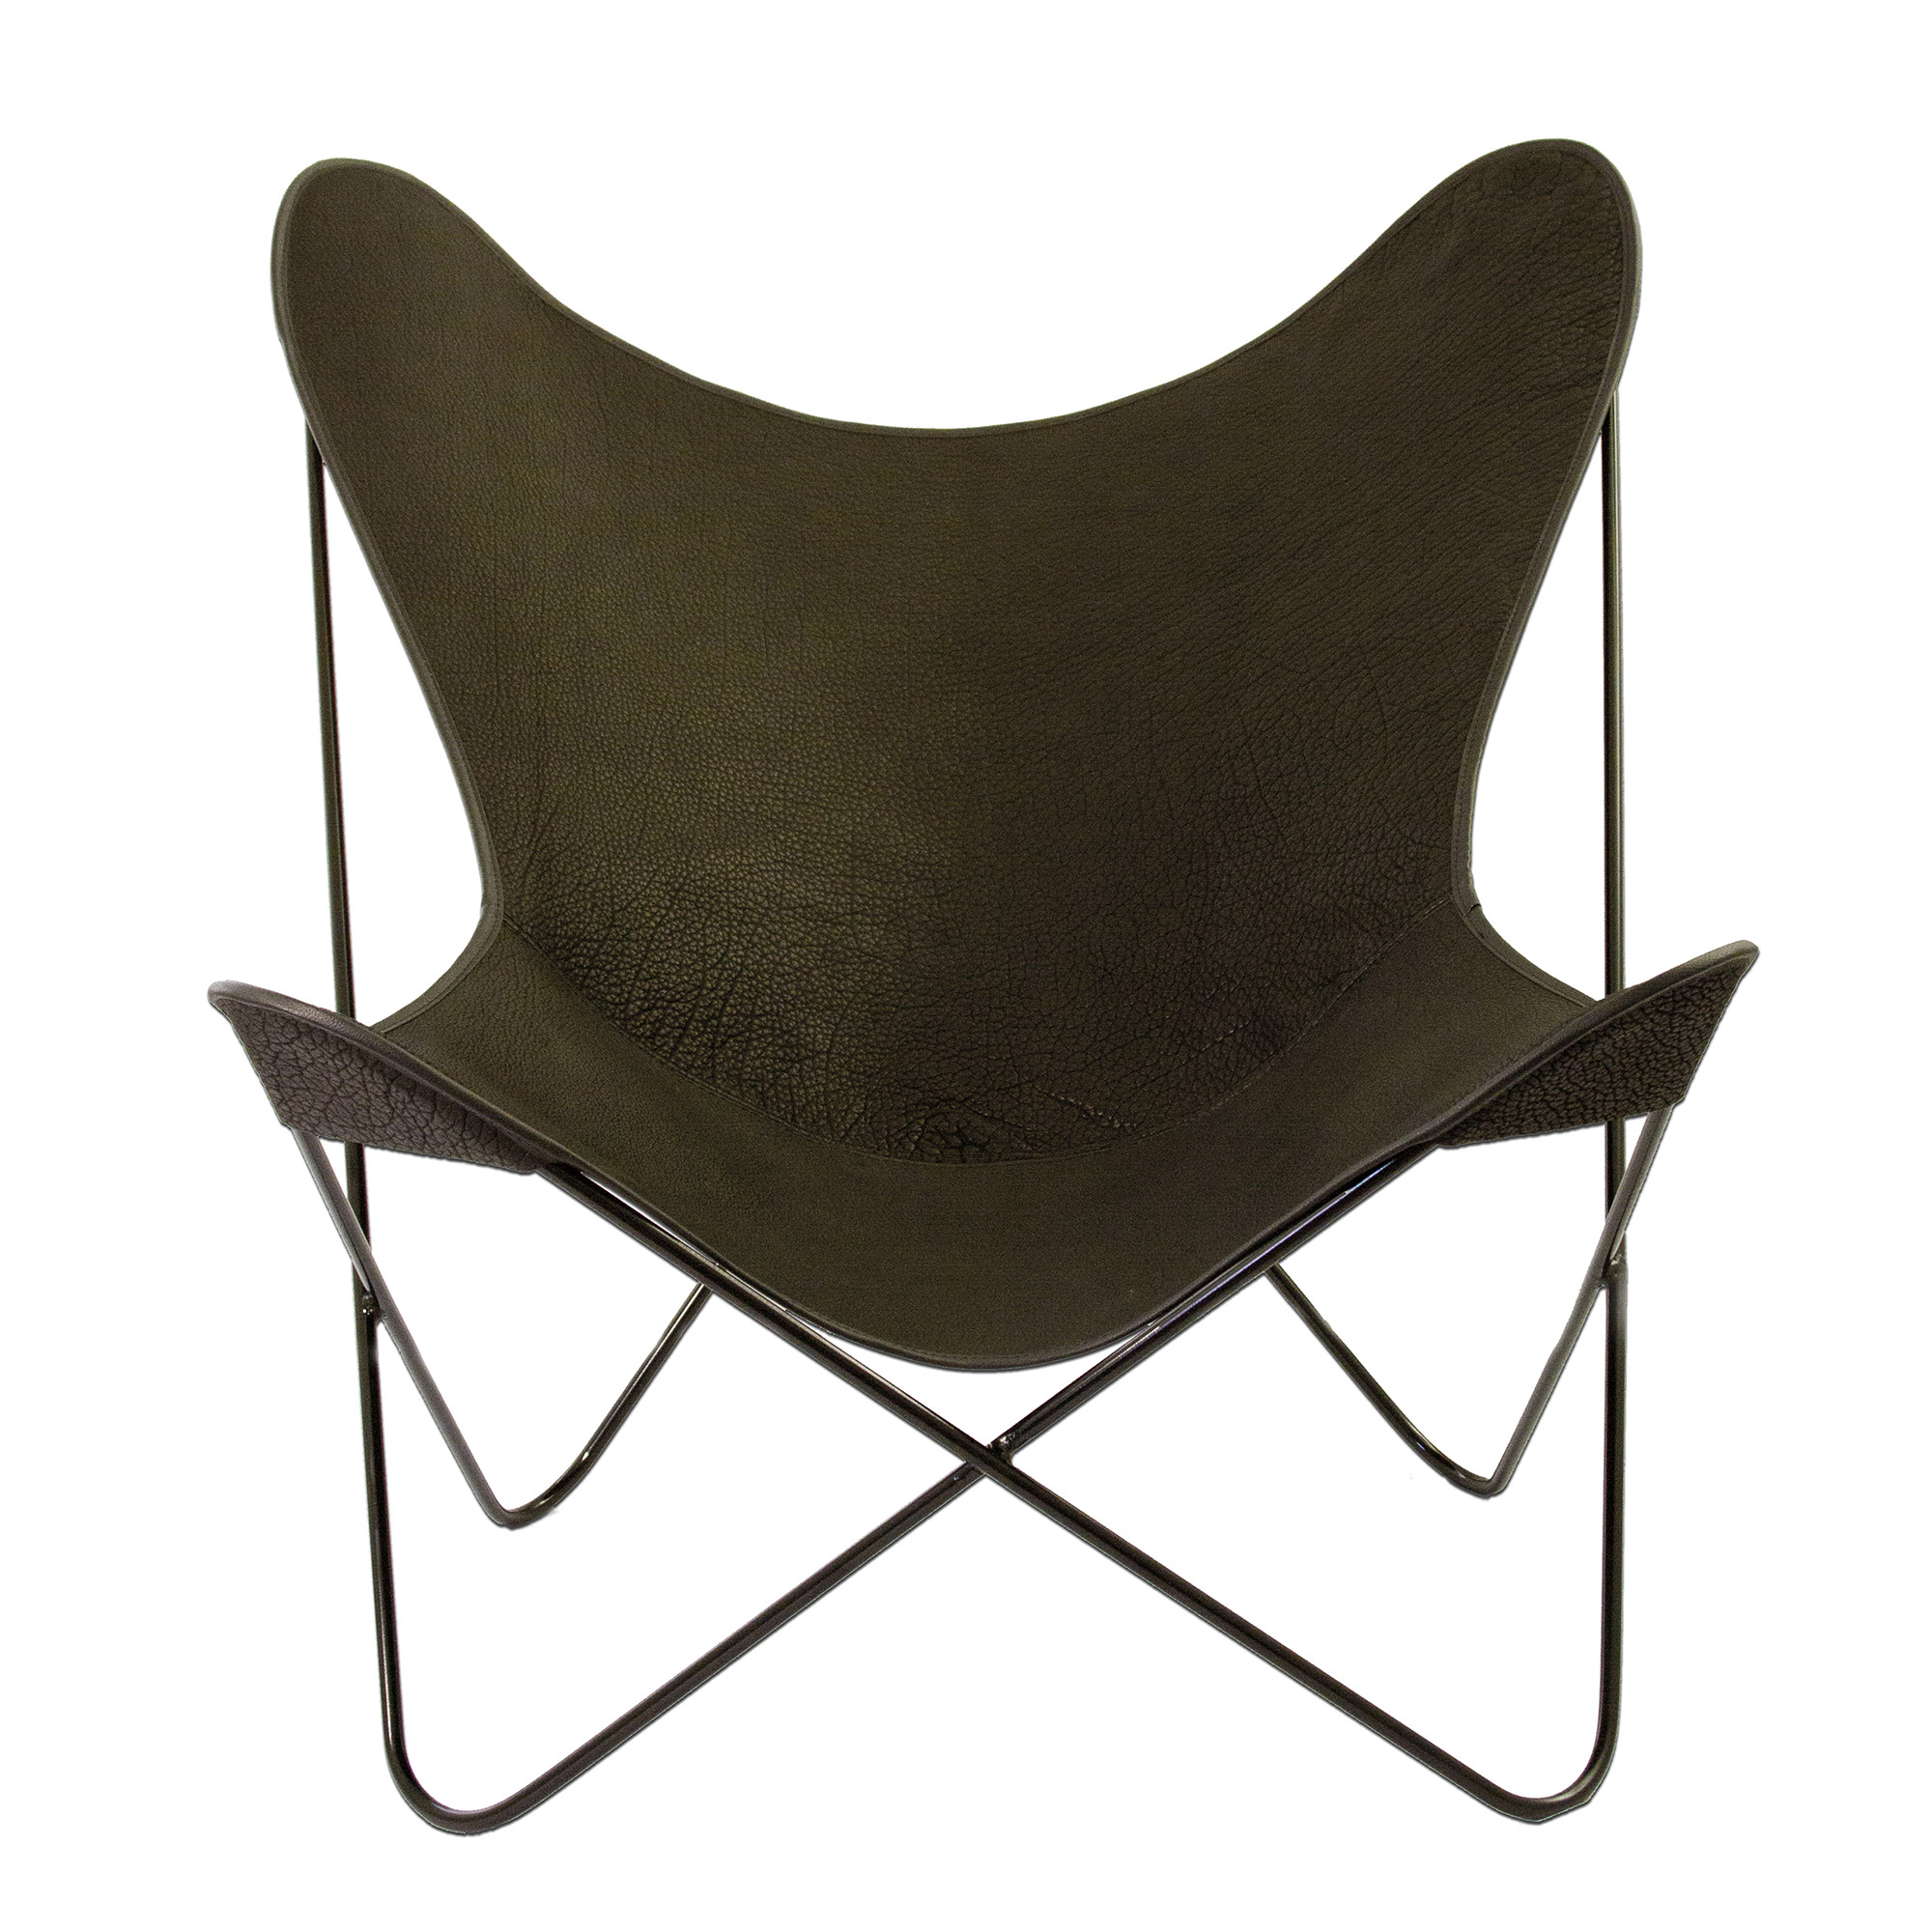 Butterfly chair black - Butterfly Chair Black 20